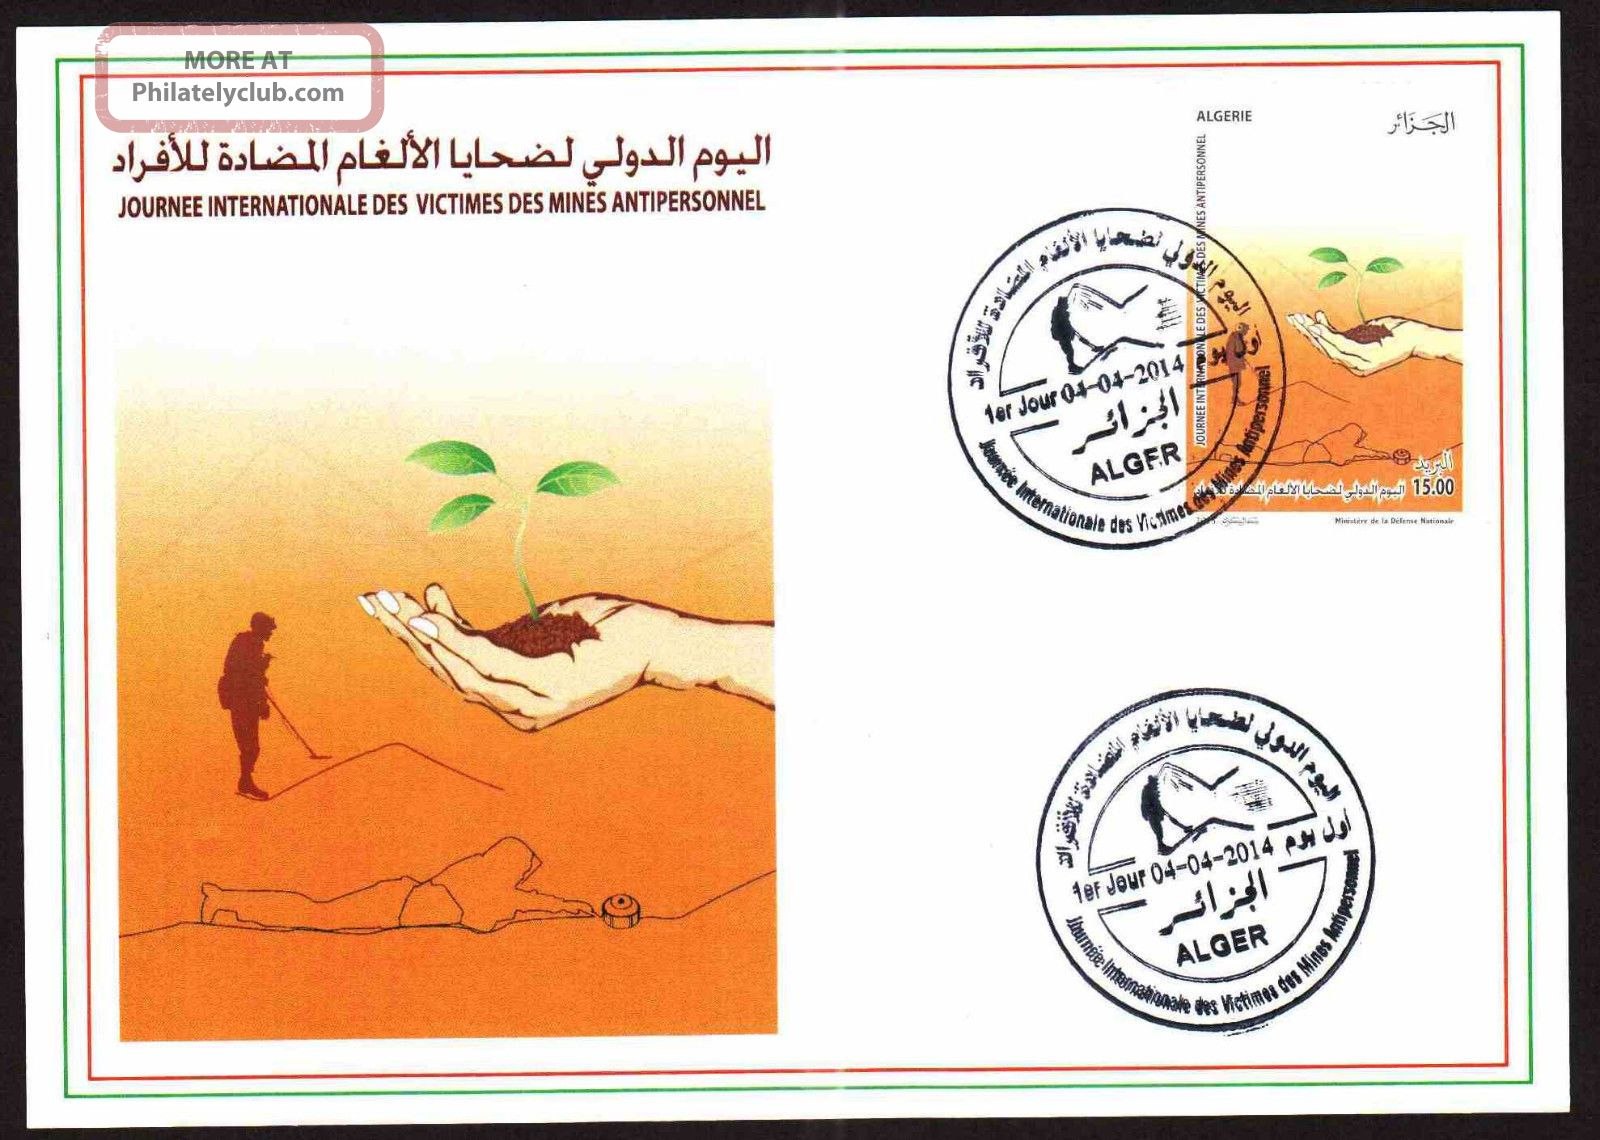 Algeria 2014 - World Day Of Antipersonnel Mines Victims - Apr 04,  2014 - Fdc Topical Stamps photo